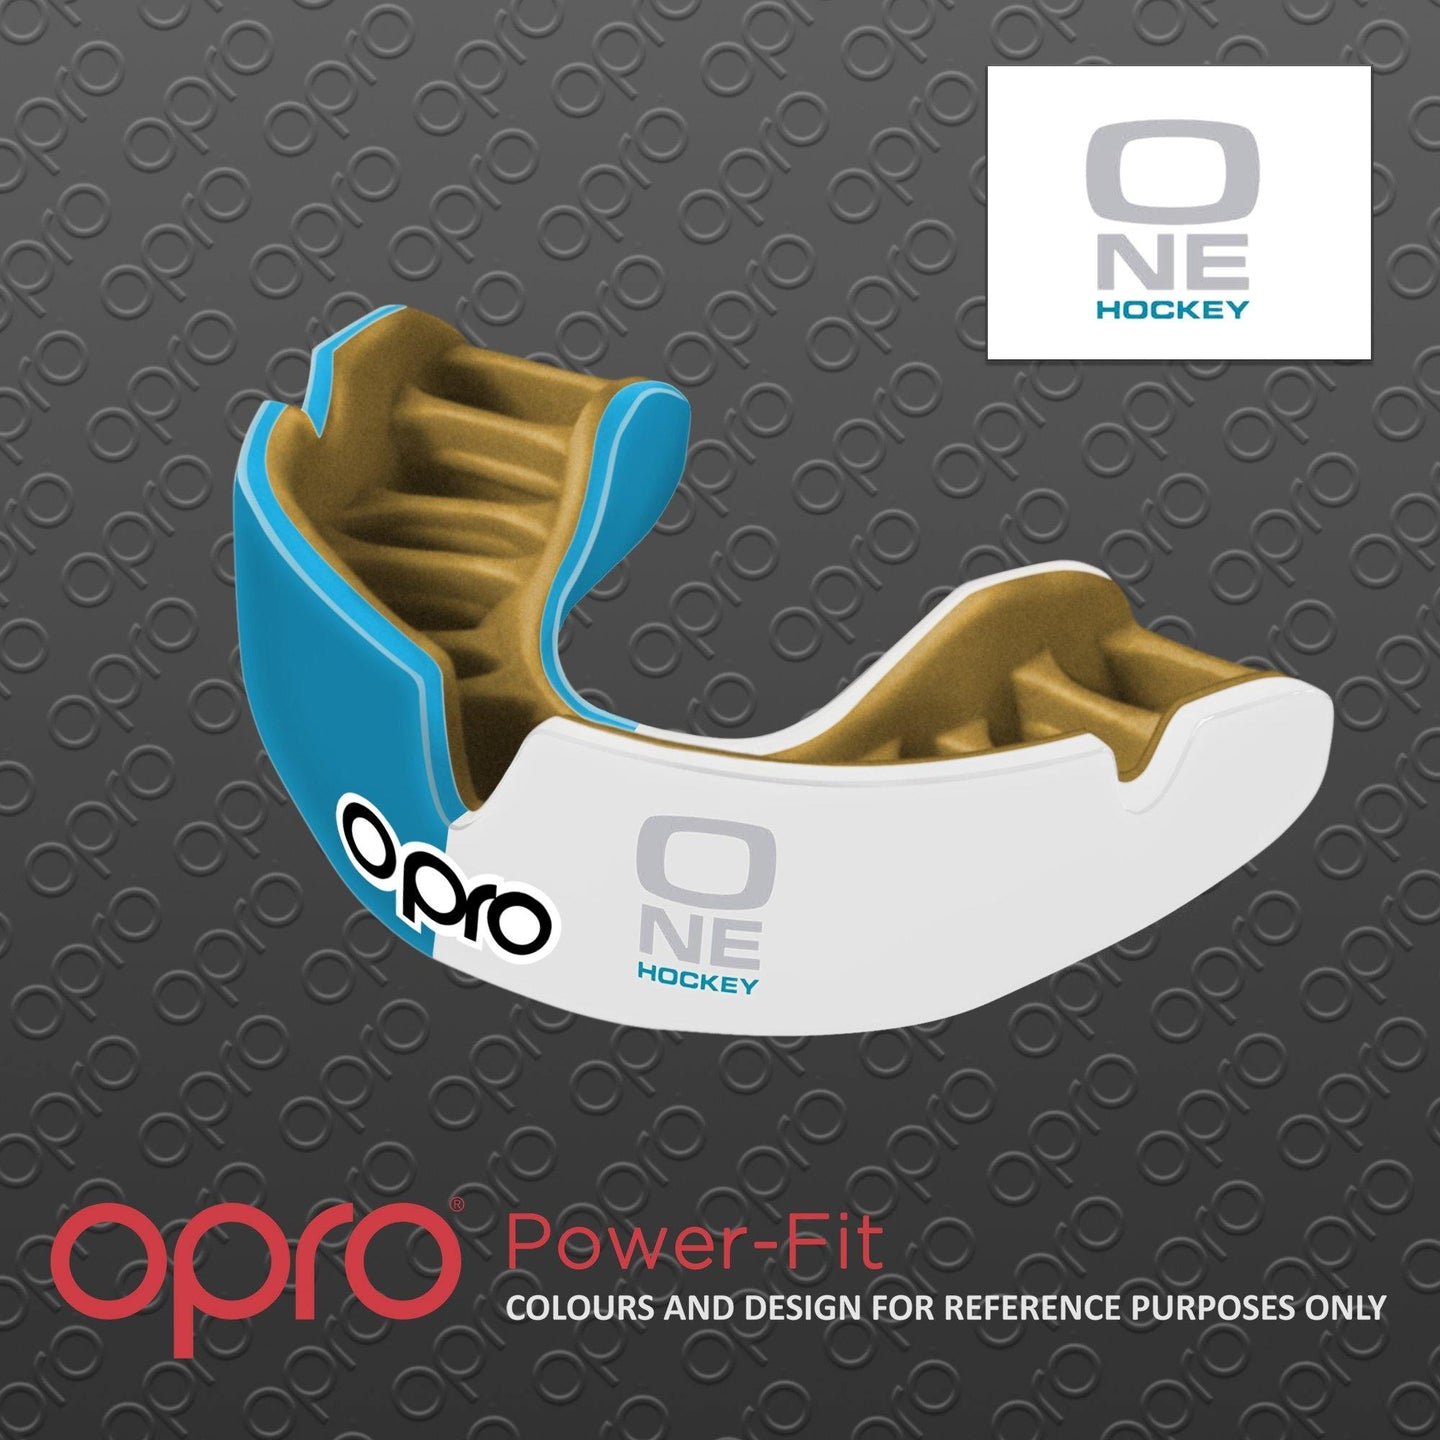 OPRO Powerfit Mouth Guard - ONE HOCKEY